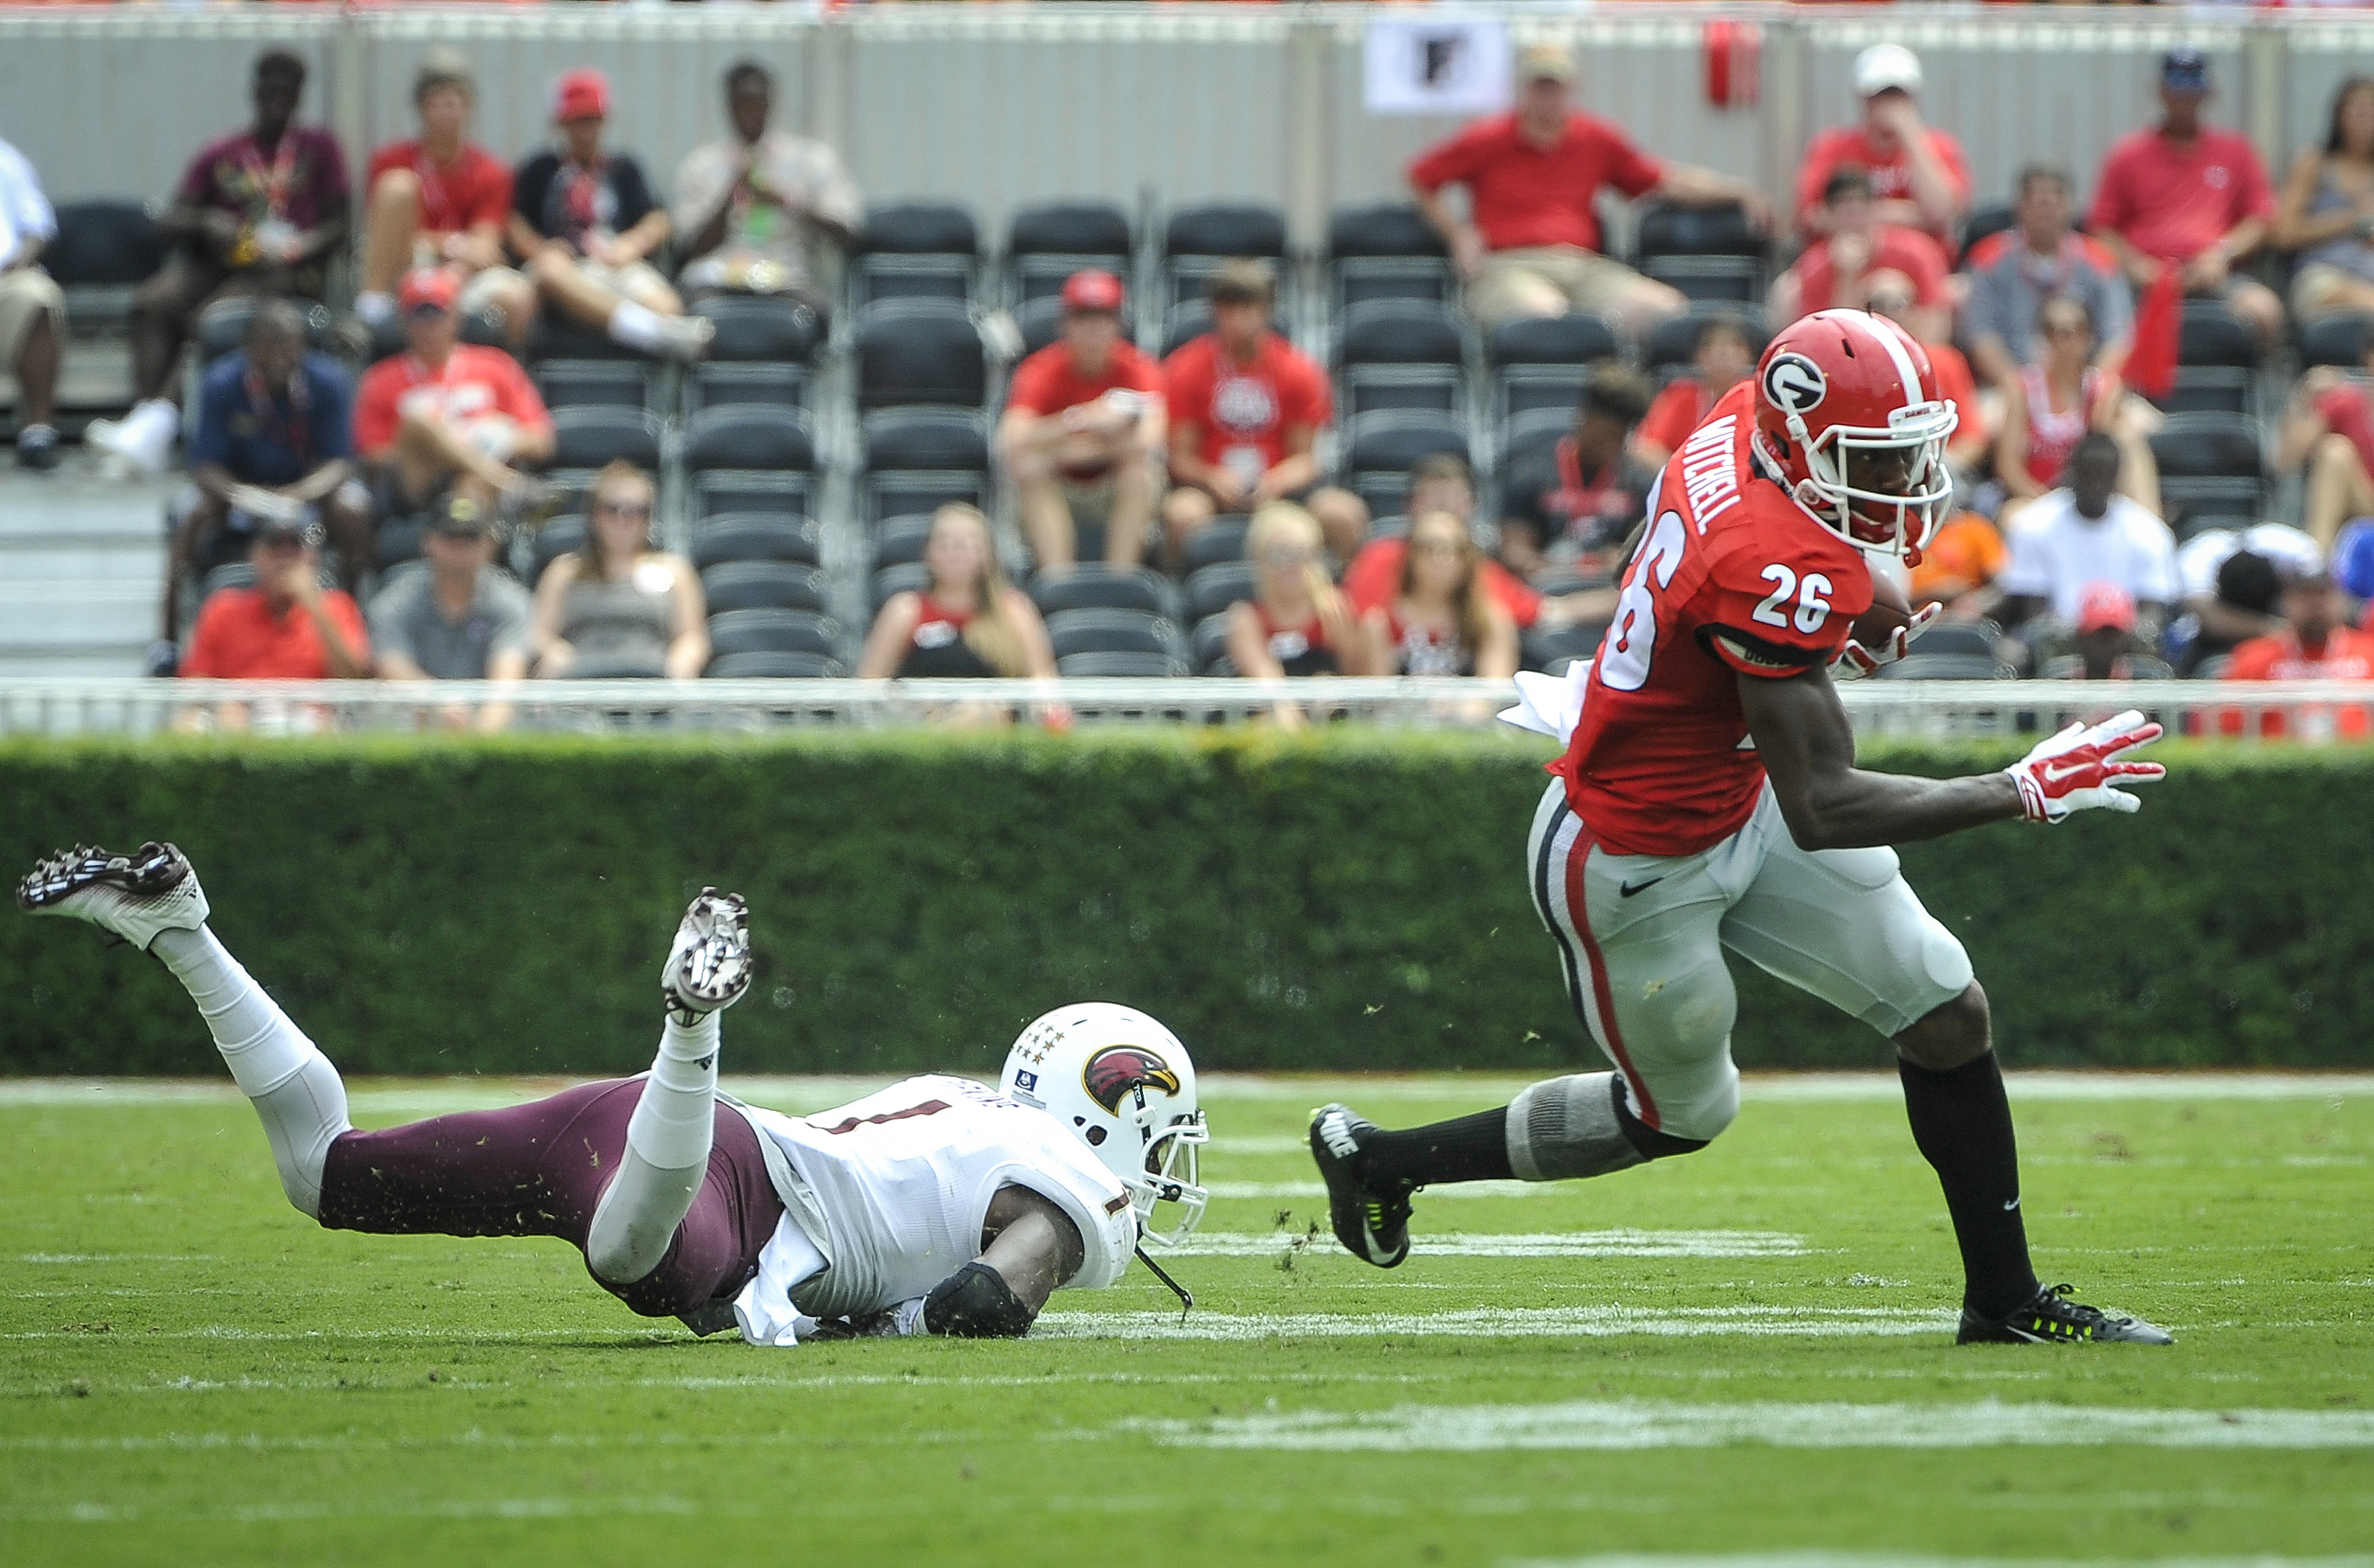 Georgia wide receiver Malcolm Mitchell (26) avoids the tackle by Louisiana Monroe cornerback Lenzy Pipkins (1) during the first half of an NCAA college football game, Saturday, Sept., 5, 2015, in Athens, Ga. (AP Photo/John Amis)